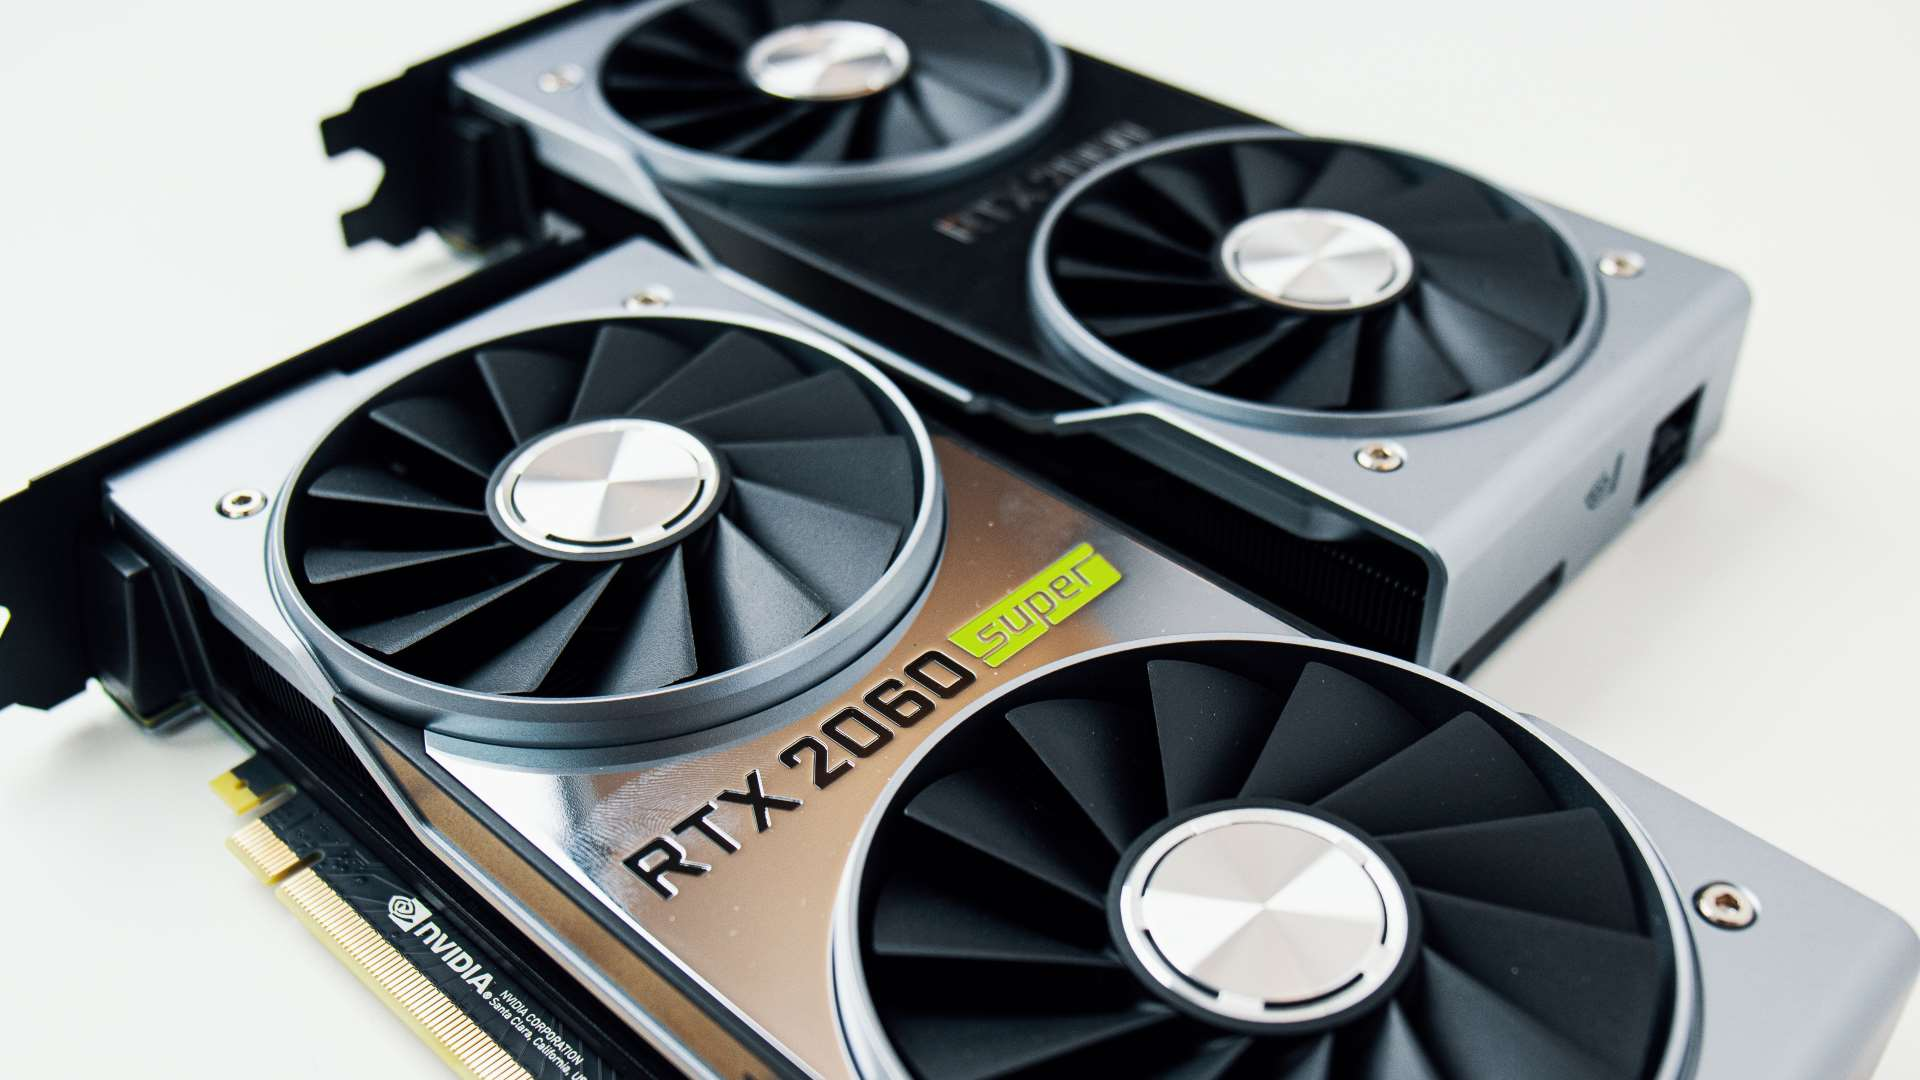 Nvidia RTX 2060 Super review: pinned down by AMD's RX 5700-series